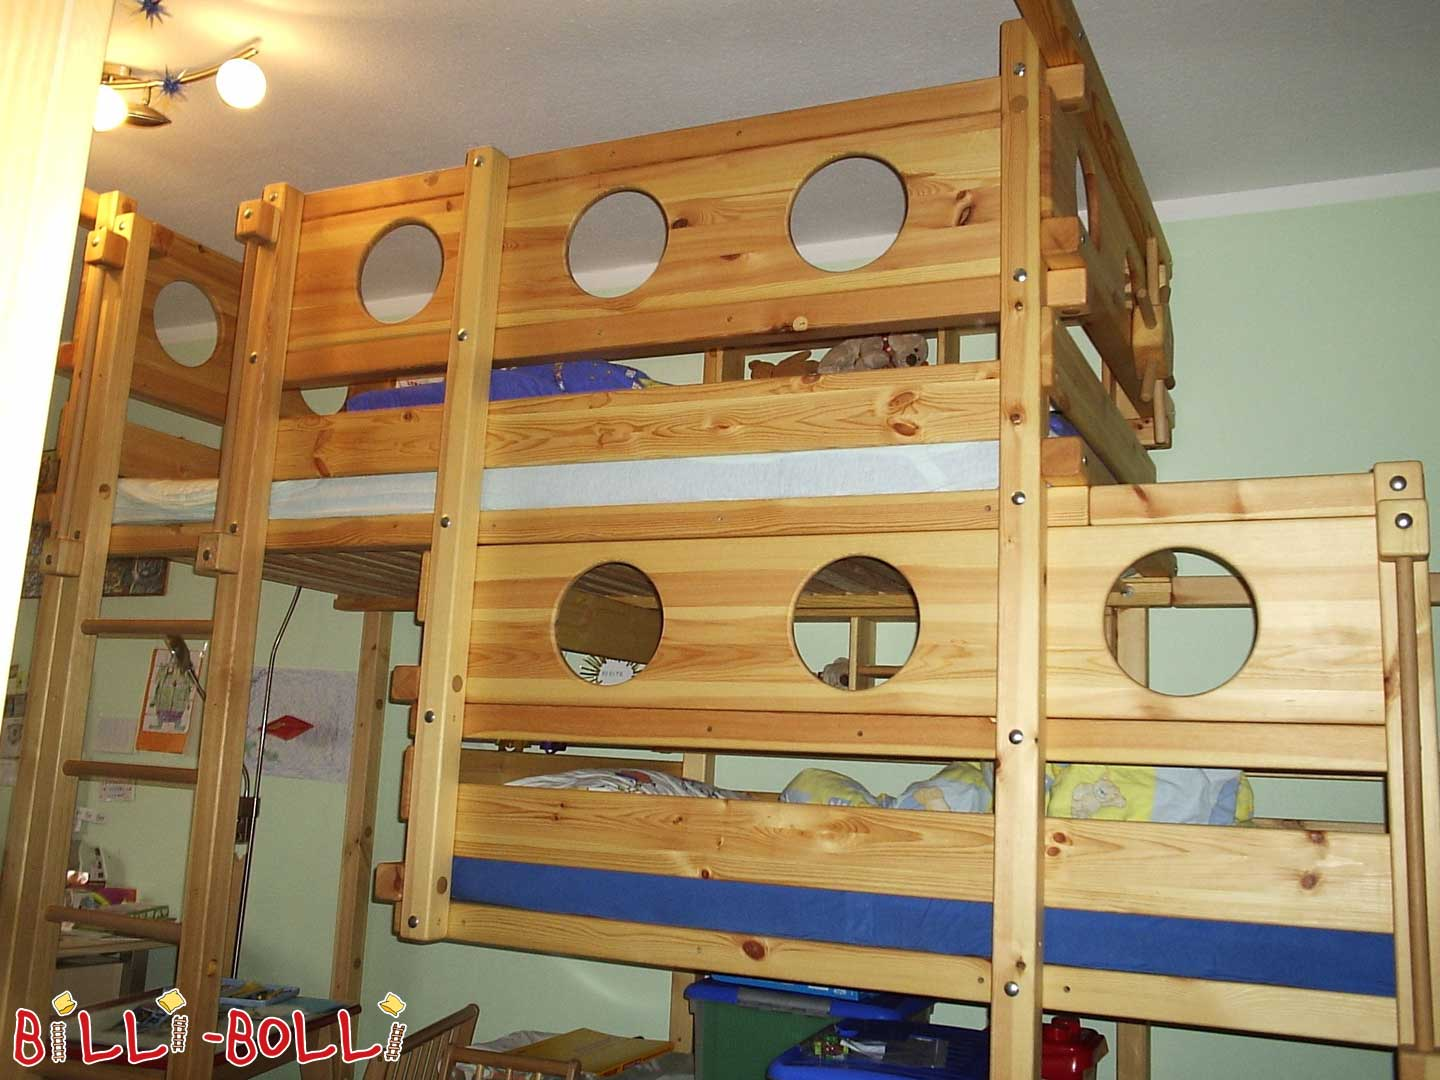 Both up bed type 2b with fire rod (second hand loft bed)